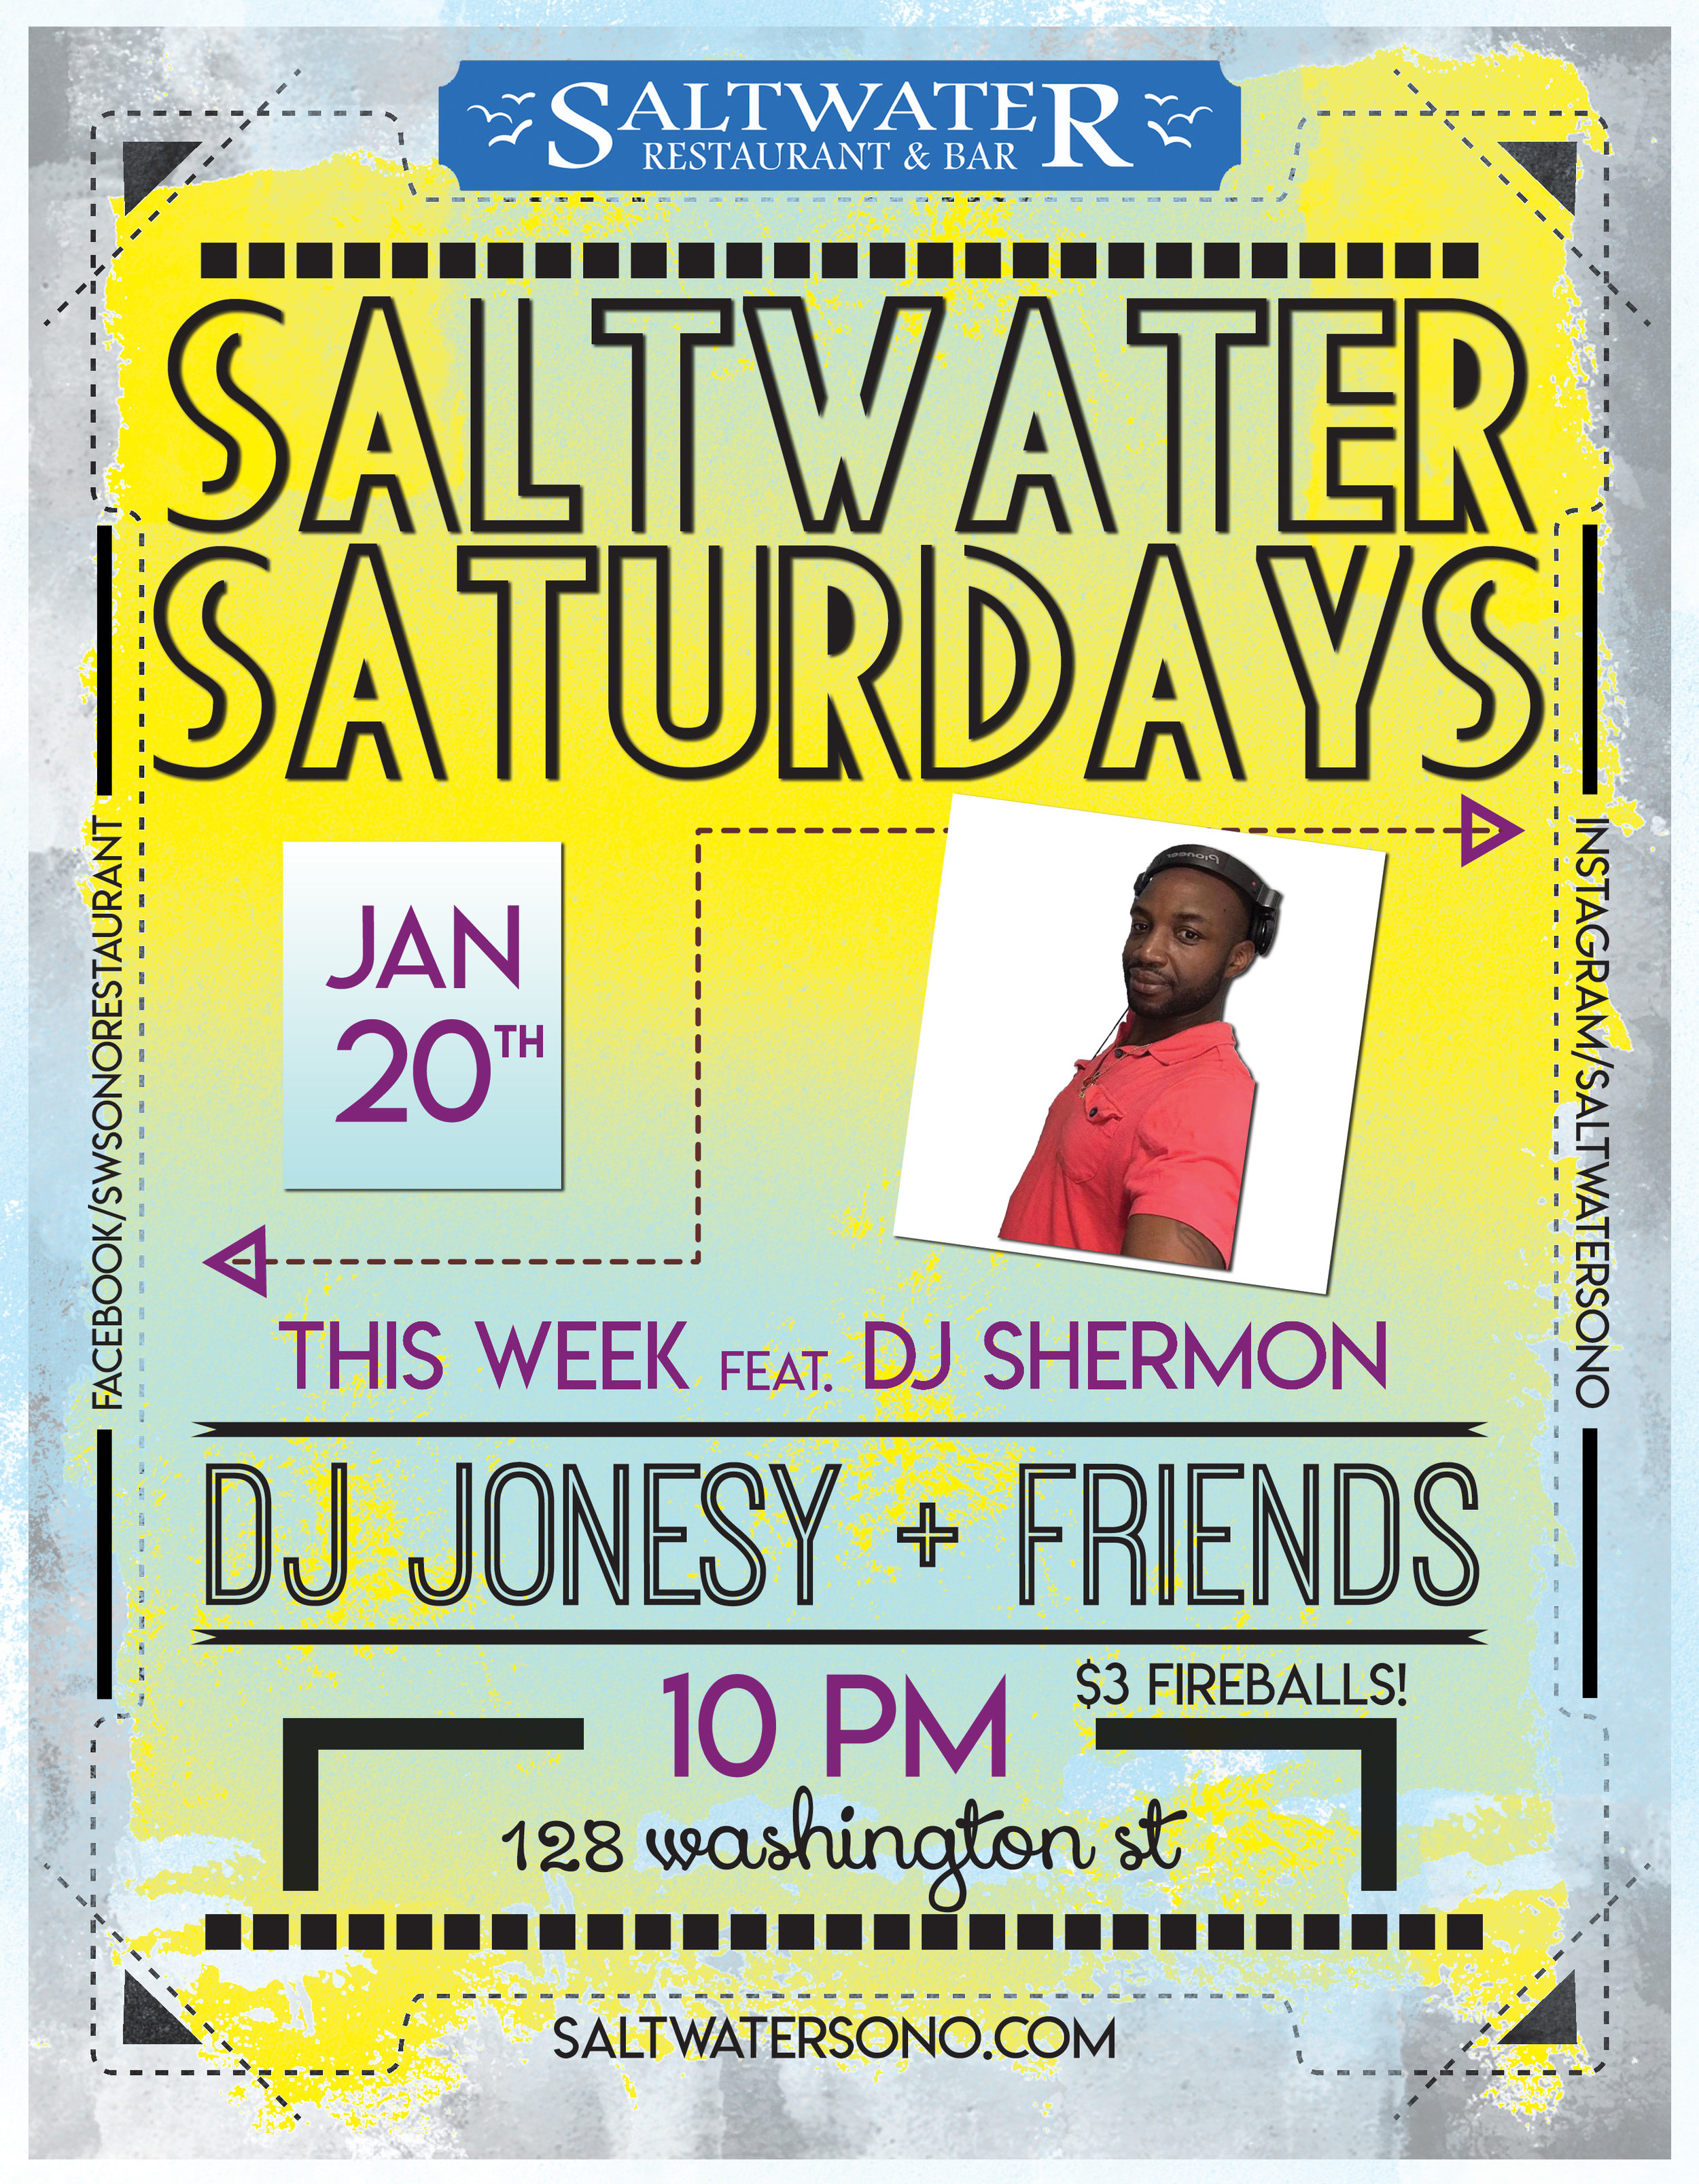 saltwater-saturdays-JAN20-SHERMON.jpg